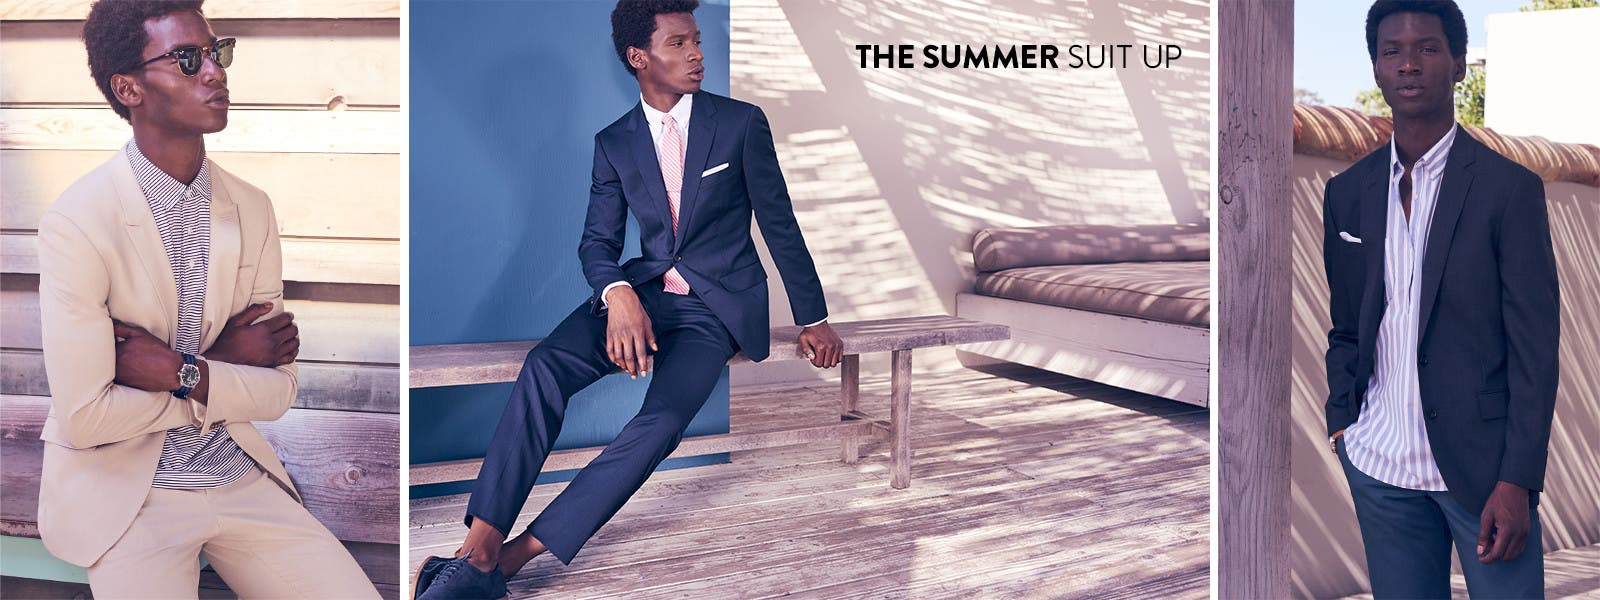 The summer suit up.